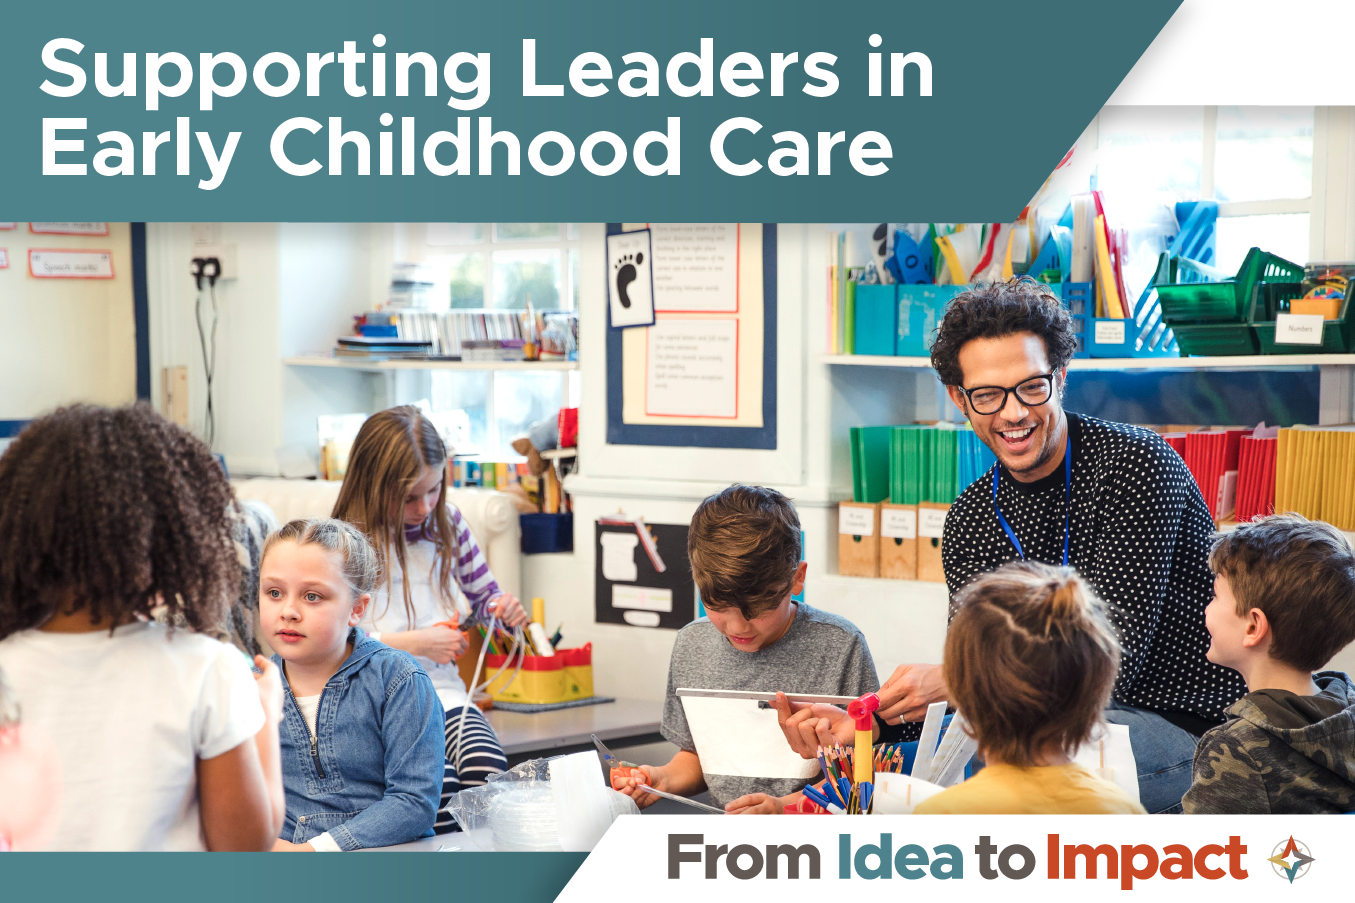 Supporting Leaders in Early Childhood Care